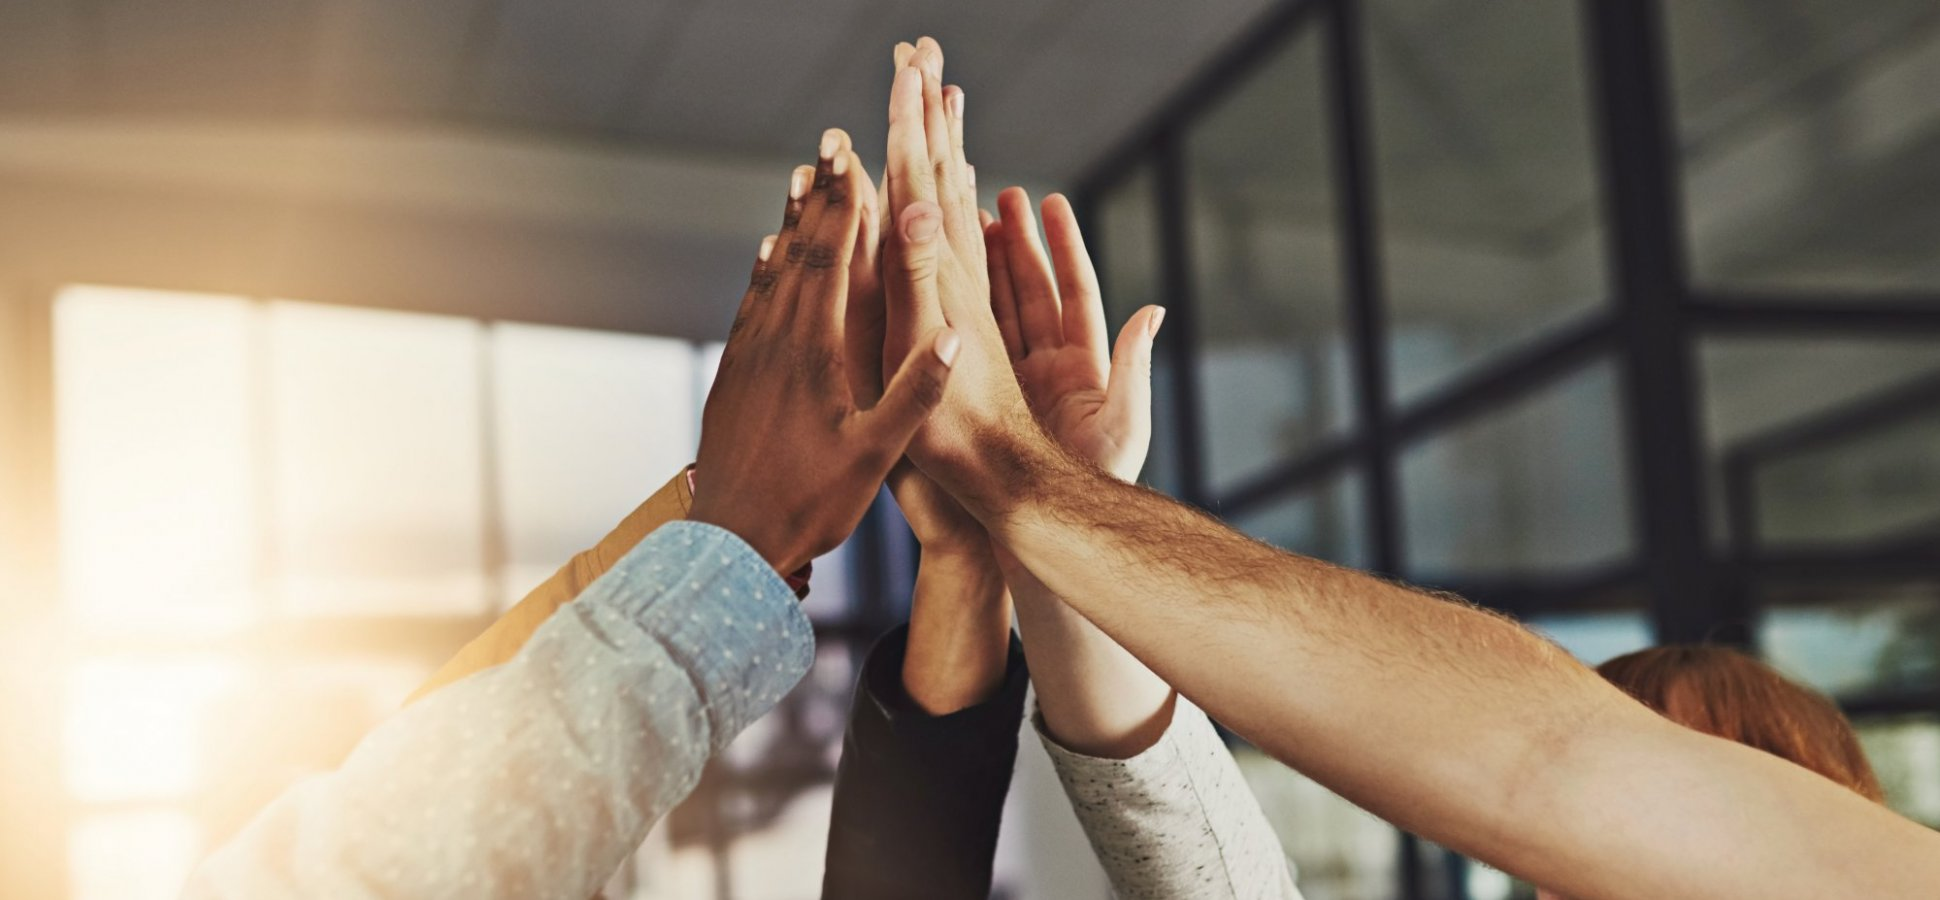 Want to Keep Your Employees Motivated and Engaged? Try These 5 Things